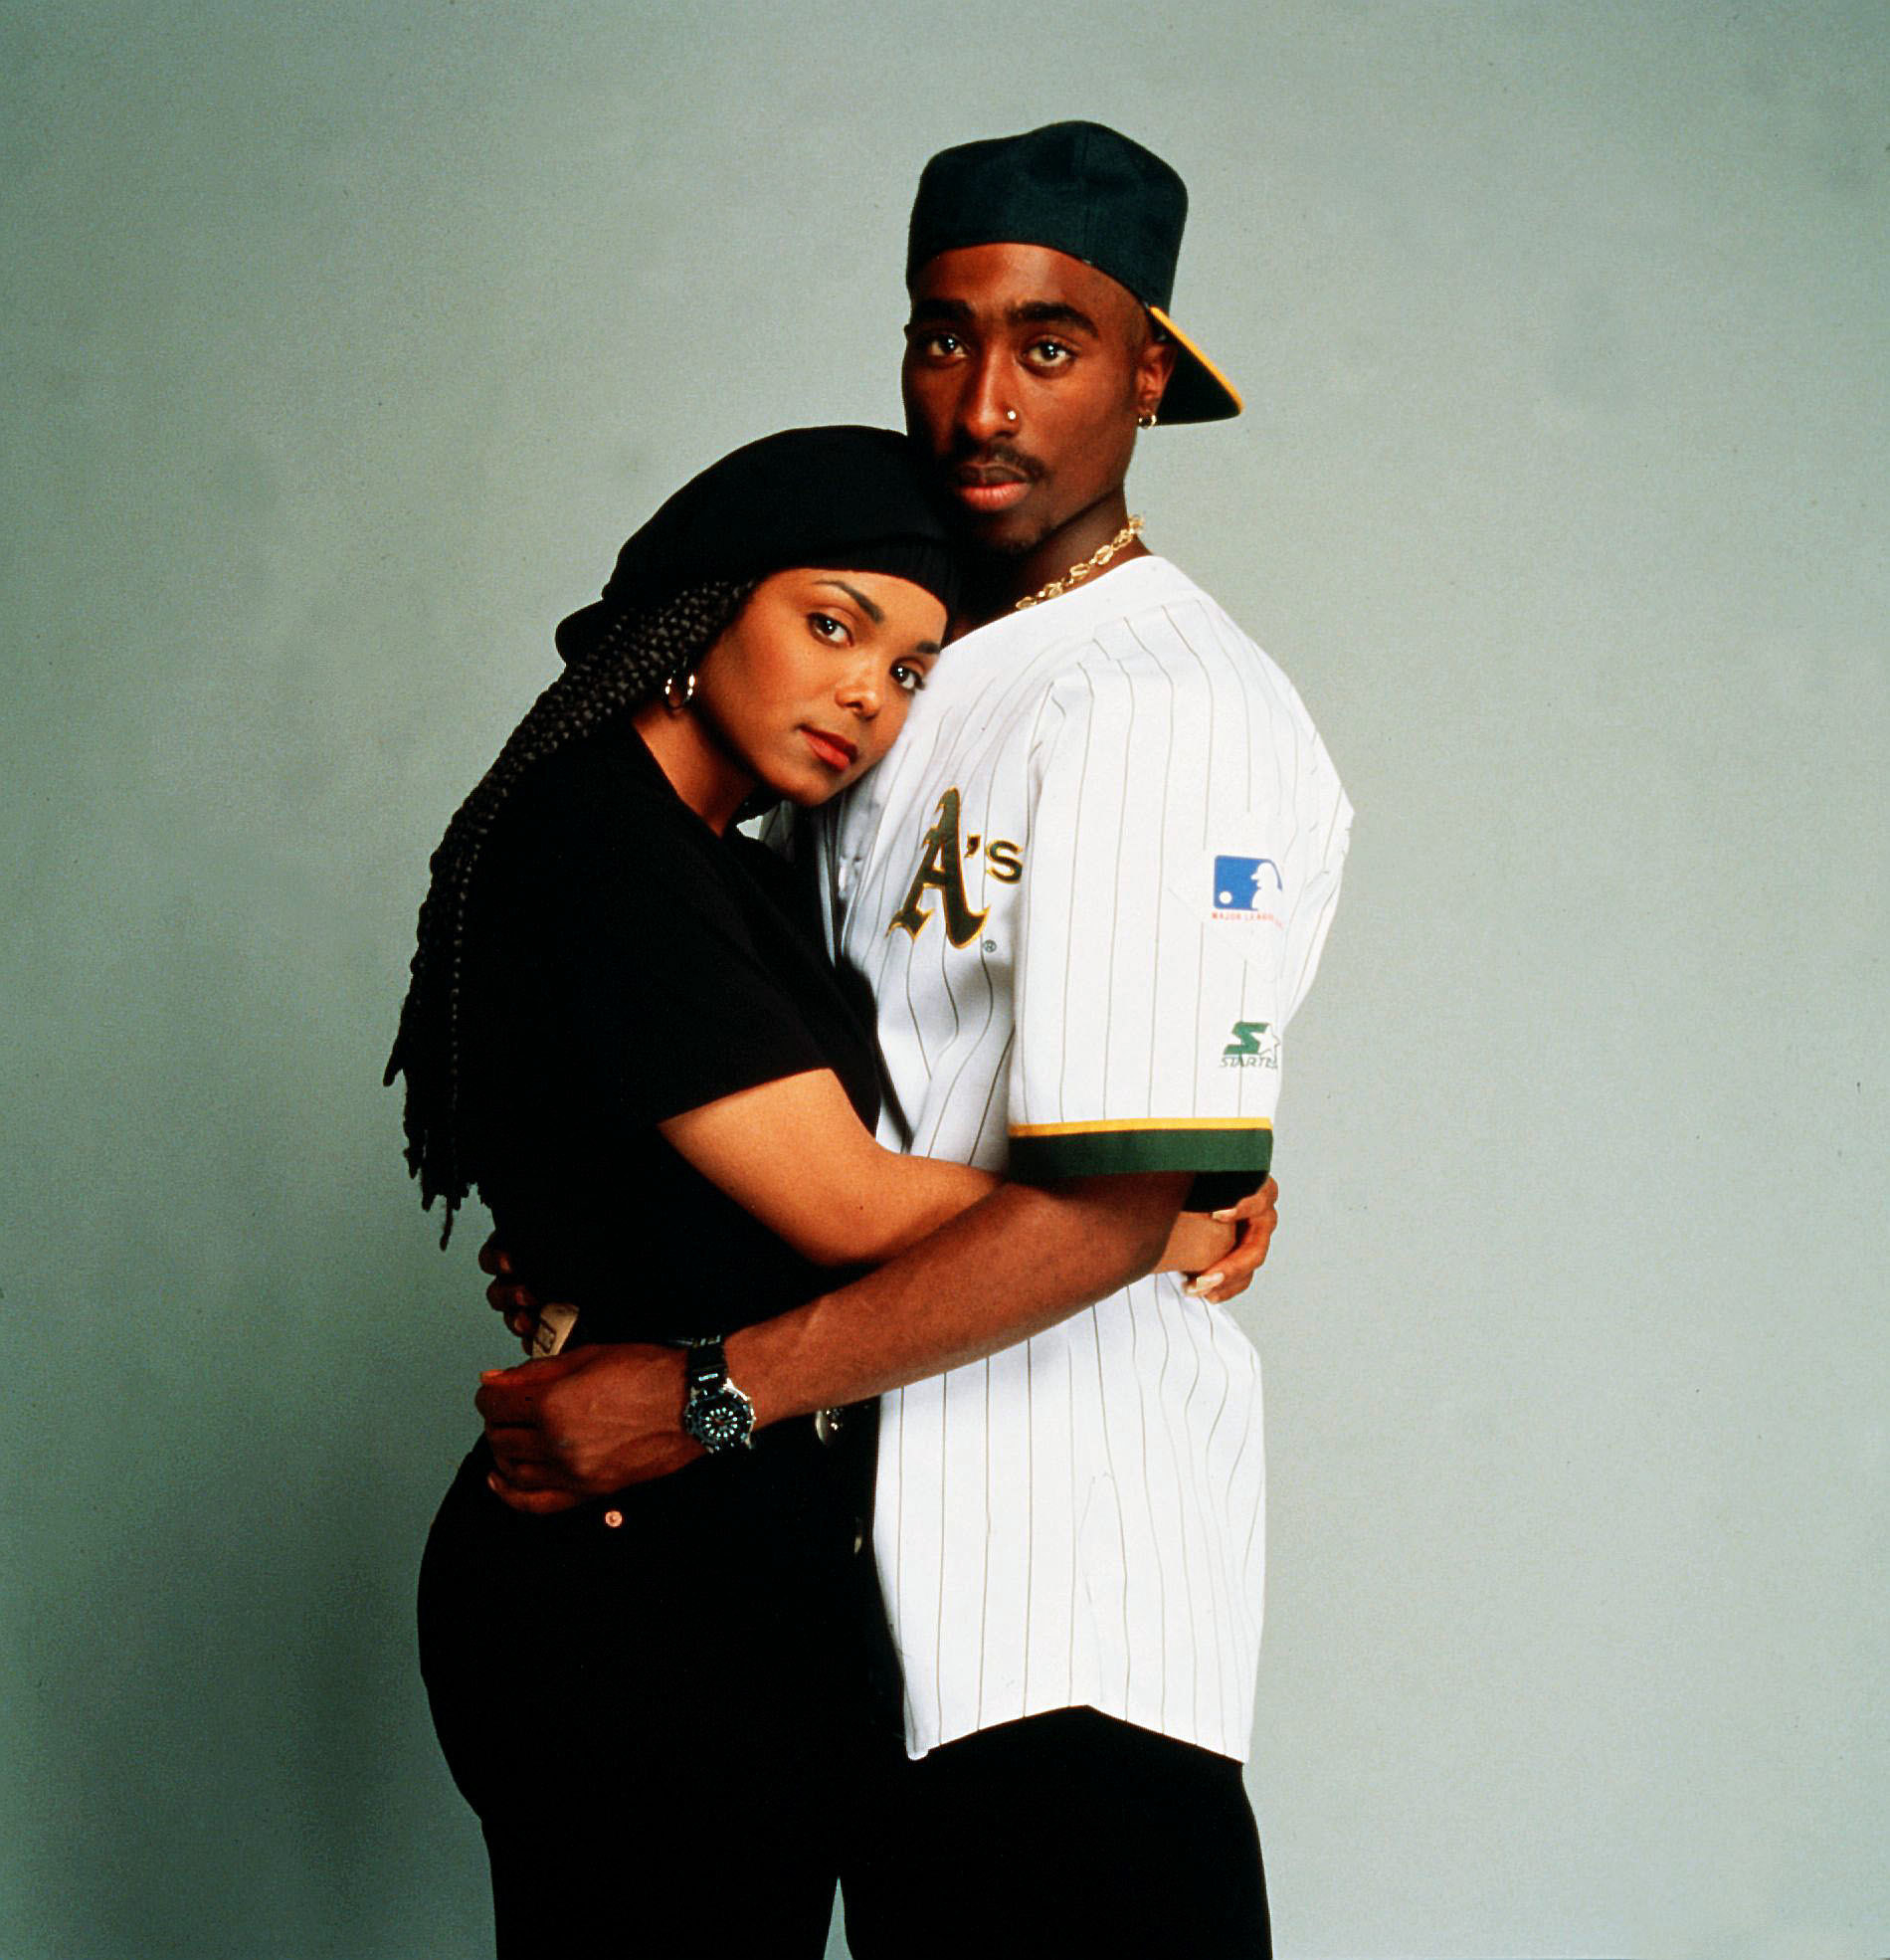 Tupac, wearing an Oakland A's jersey, holds Janet Jackson in a photo studio